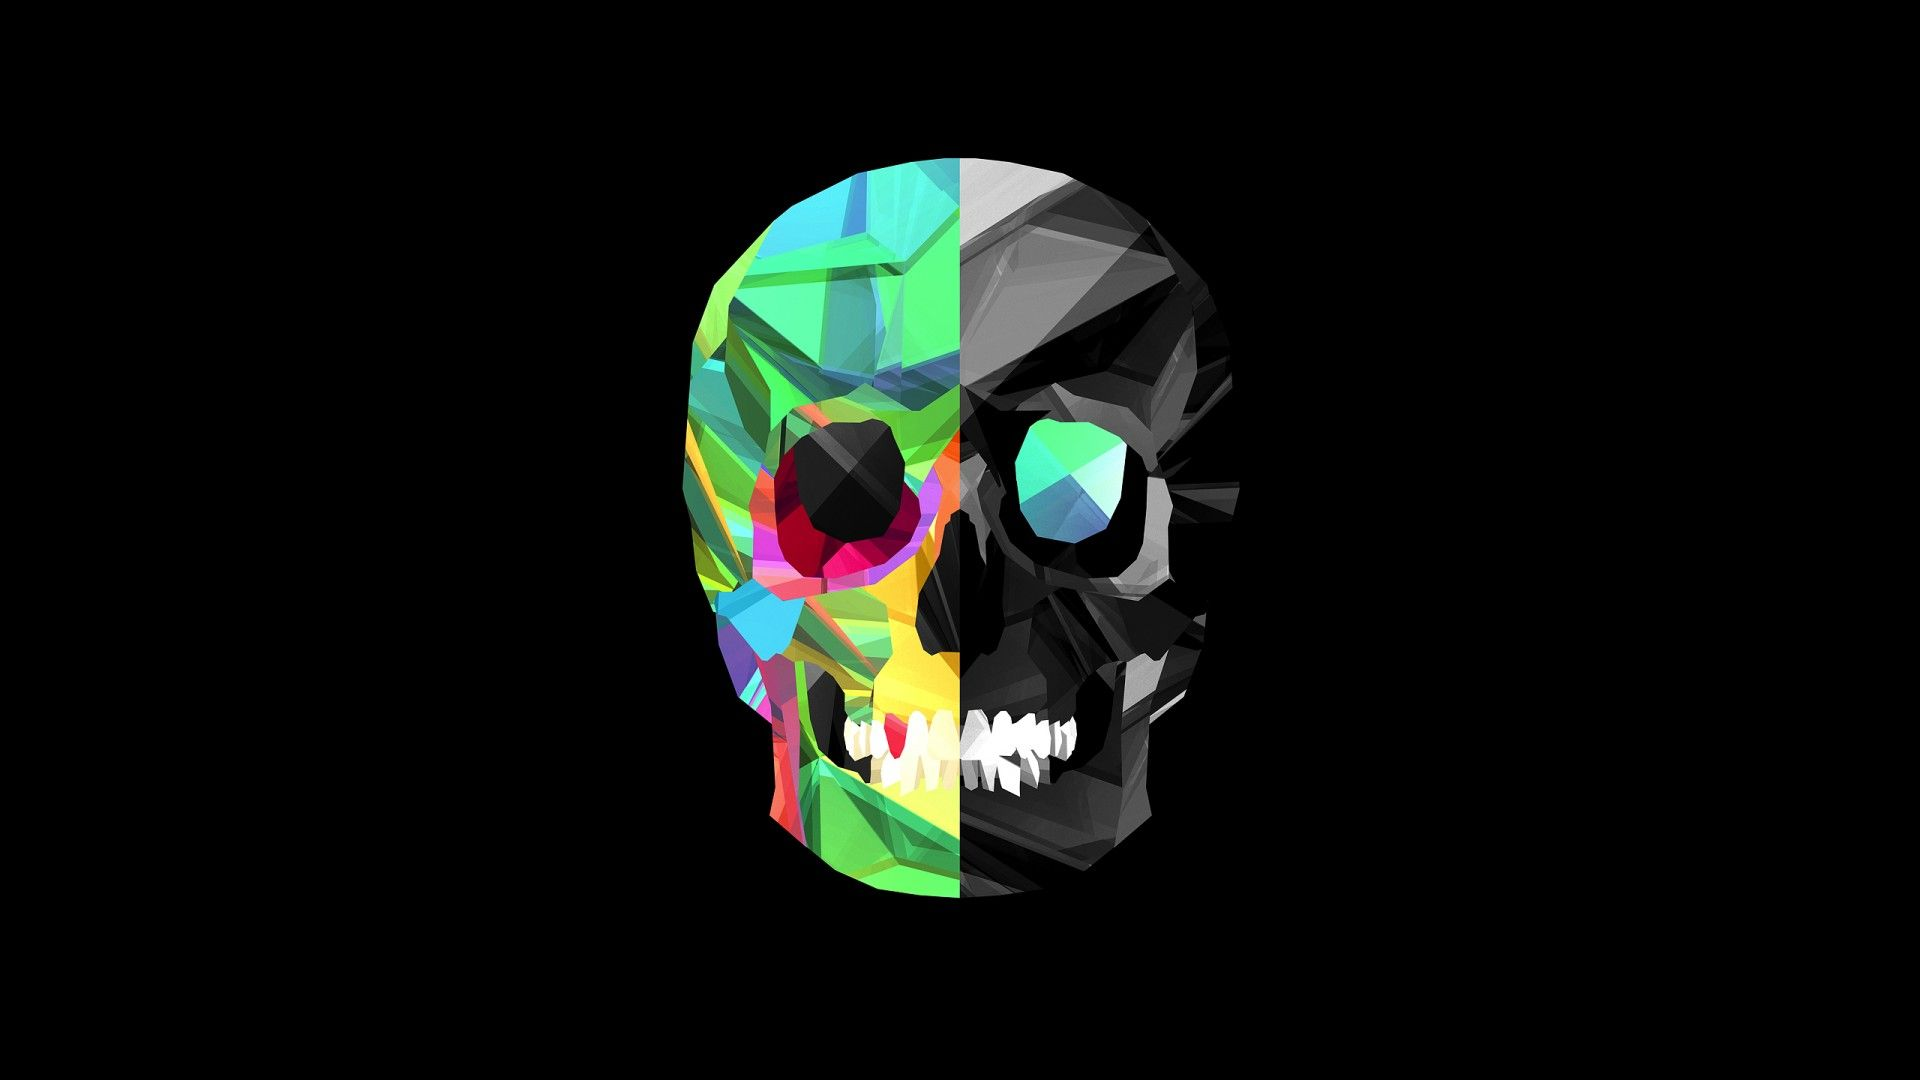 "1920x1080 Colored Skull Art HD Wallpaper Wallpaper | WallpaperLepi"">. Download · 1920x1080 89 Sugar Skull HD Wallpapers ..."